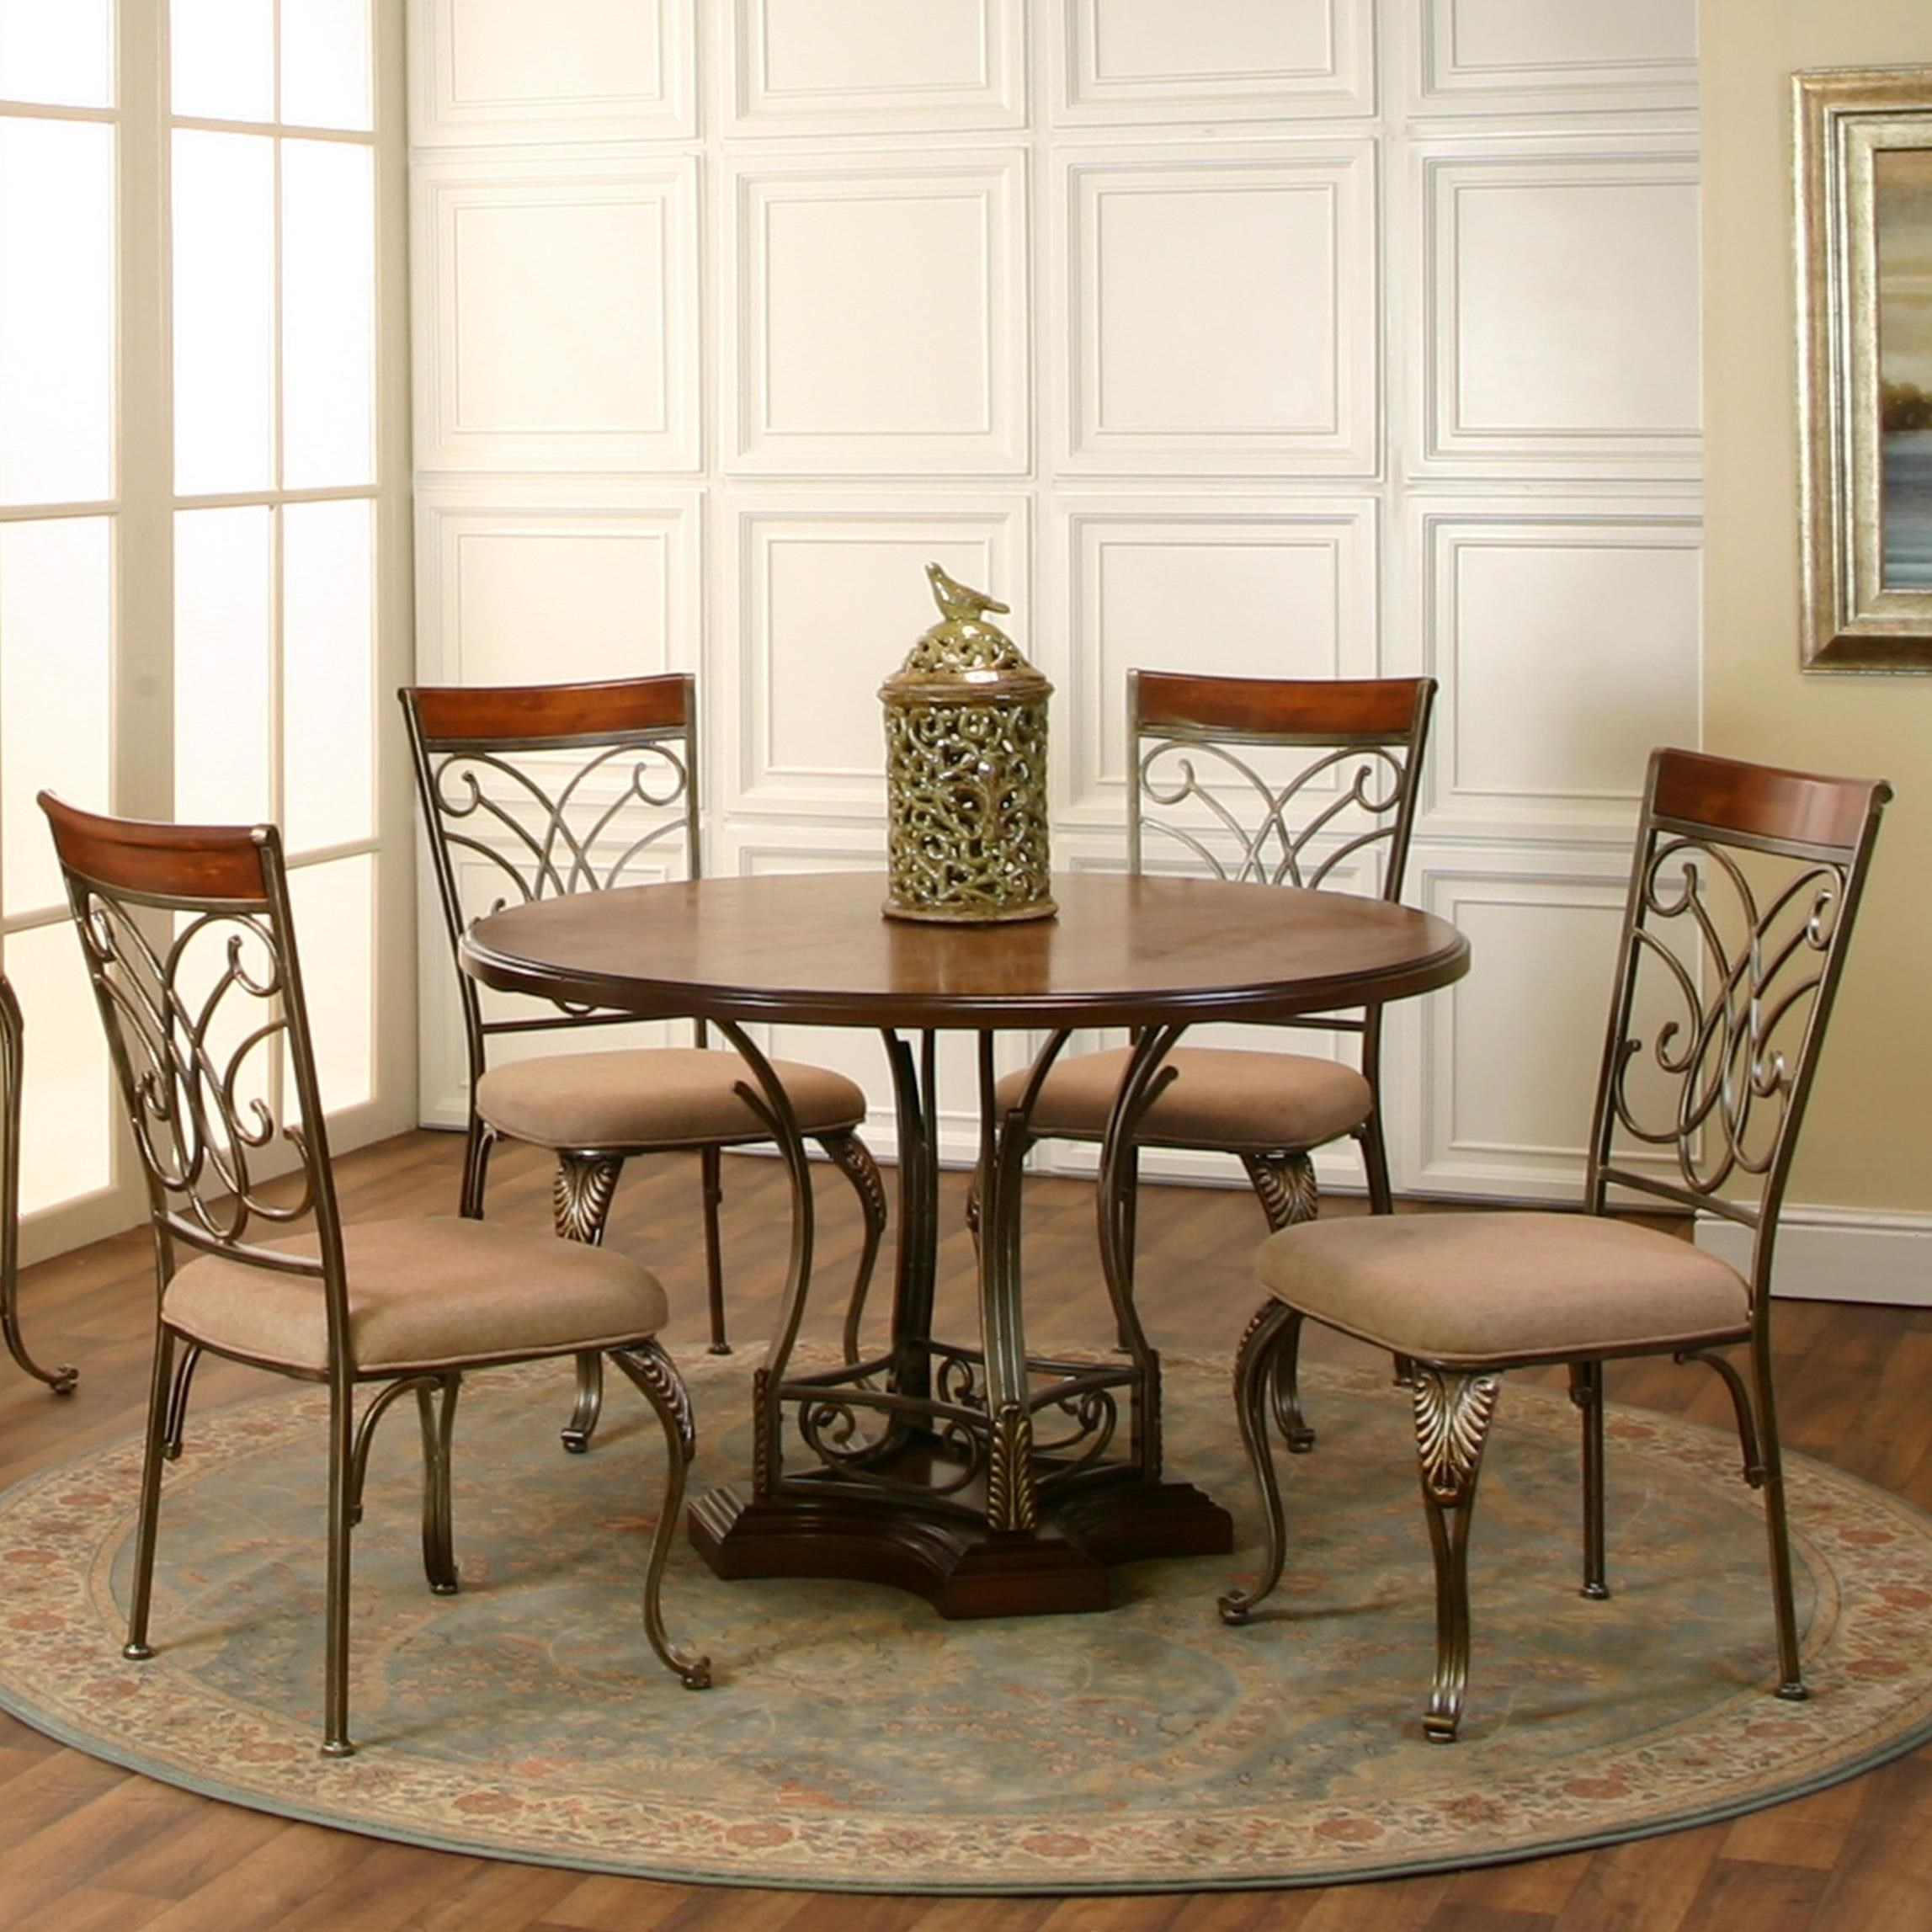 Cramco, Inc Harlow 5-Piece Round Metal/Wood Table Set - Item Number: J9186-63+61+4x01